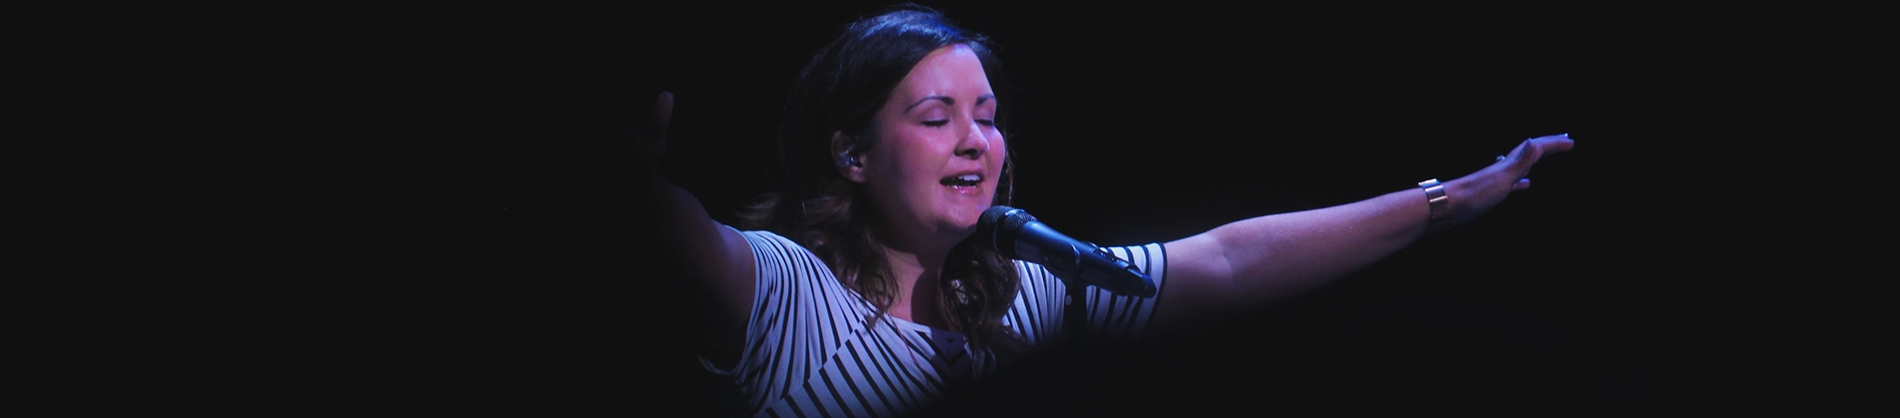 A woman leading worship with a spotlight on her